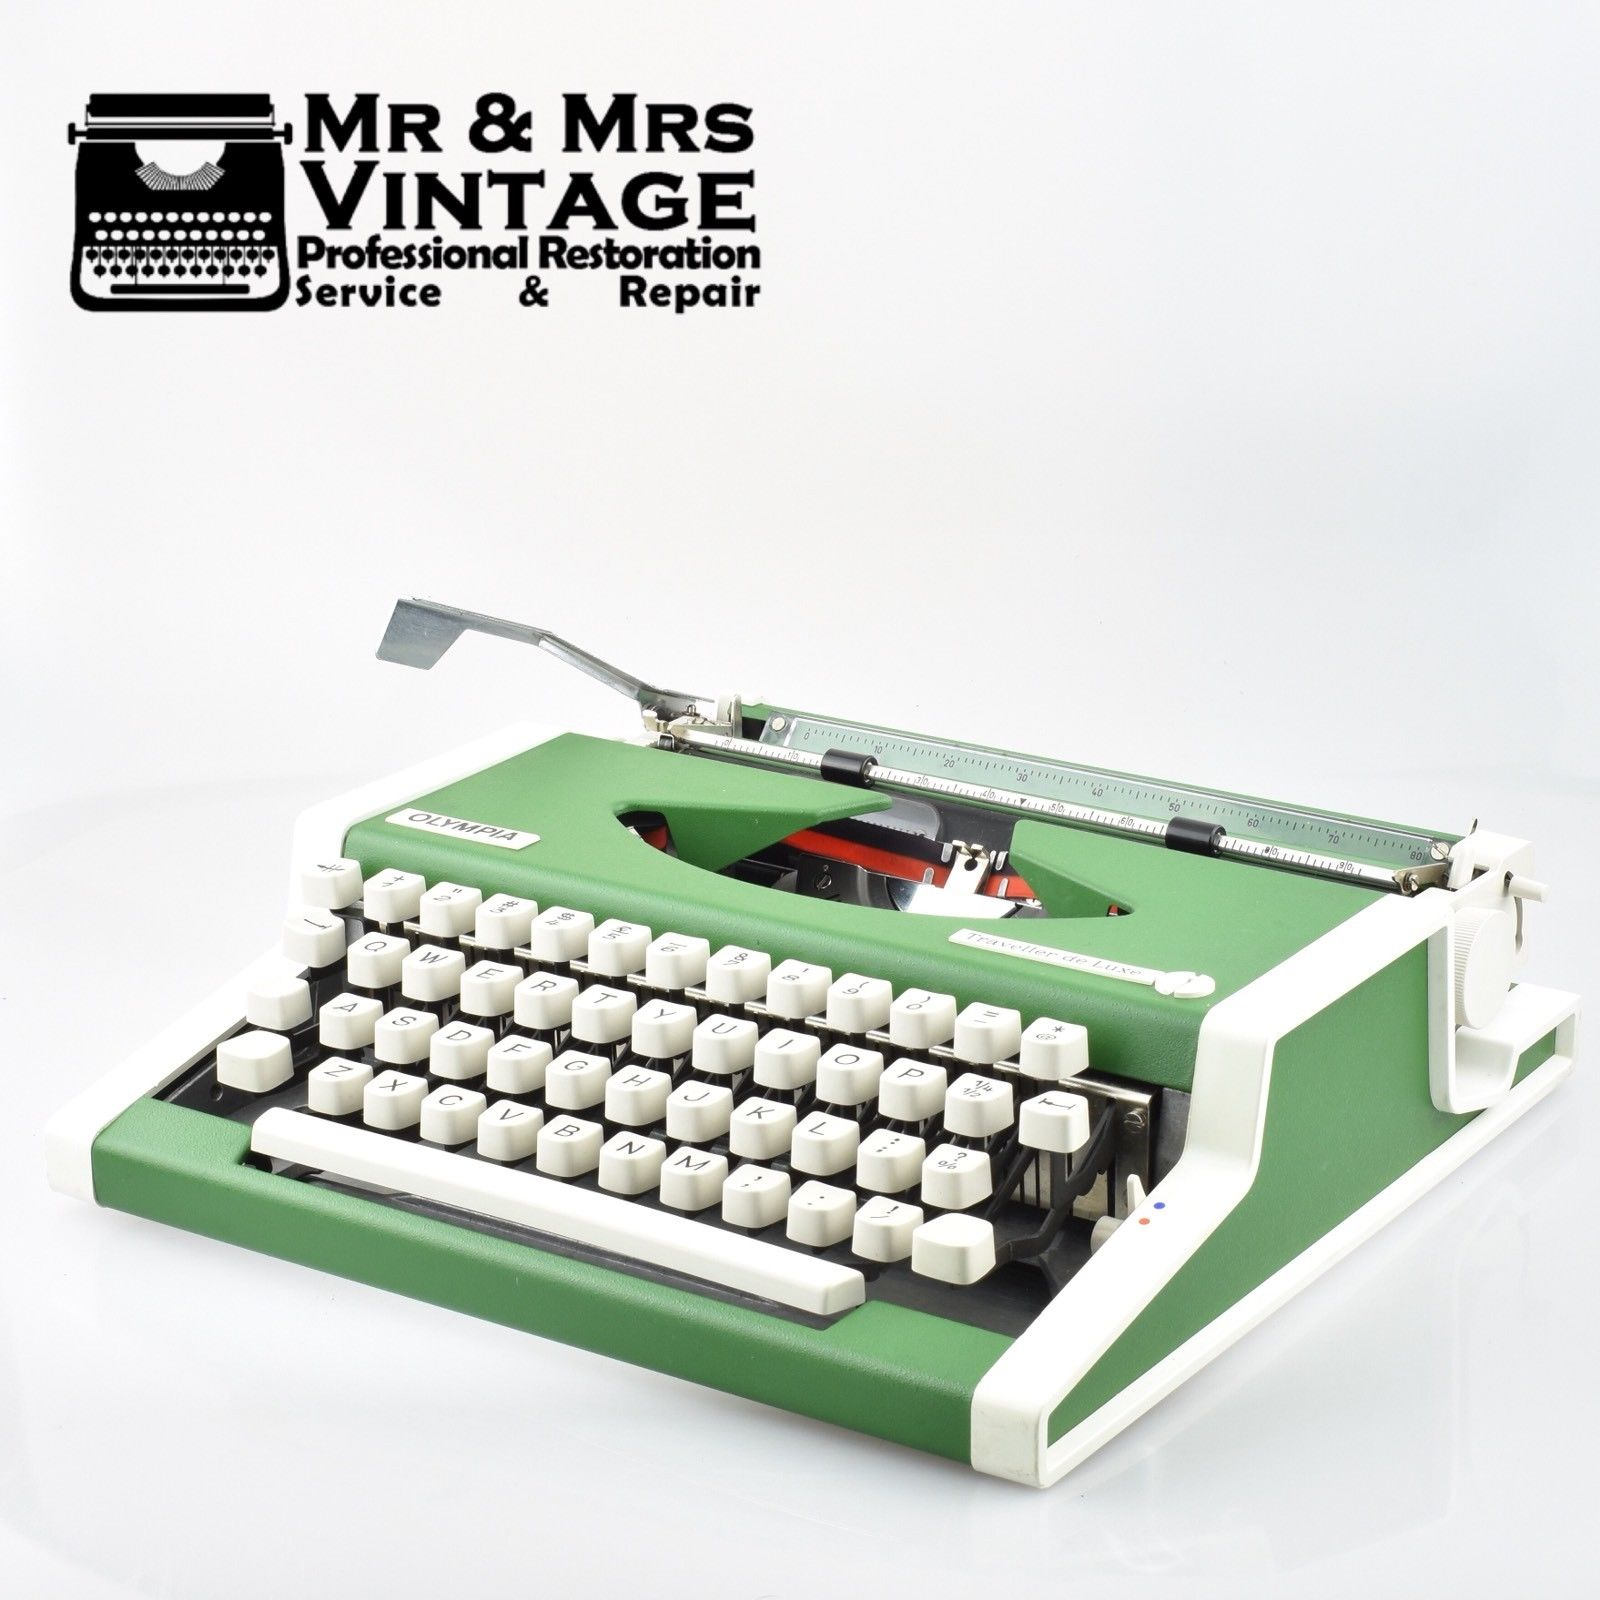 Rare Green Olympia Traveller Deluxe Typewriter Portable Rare & Limited Edition